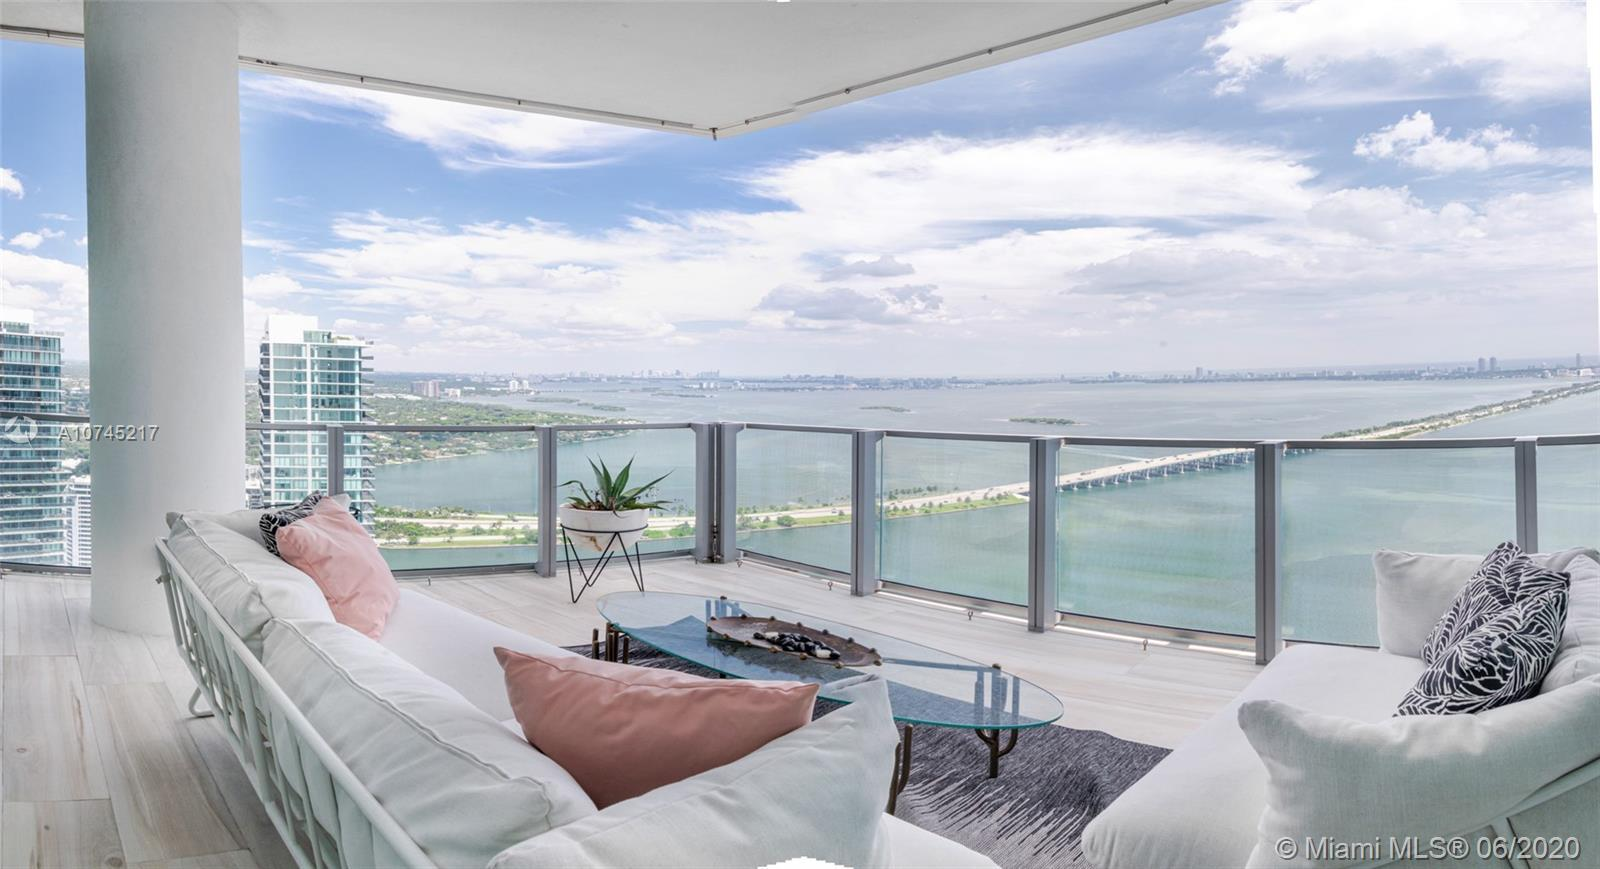 Spectacular NE corner Penthouse 3BD/3.5BA plus oversized family room with direct bay and ocean views